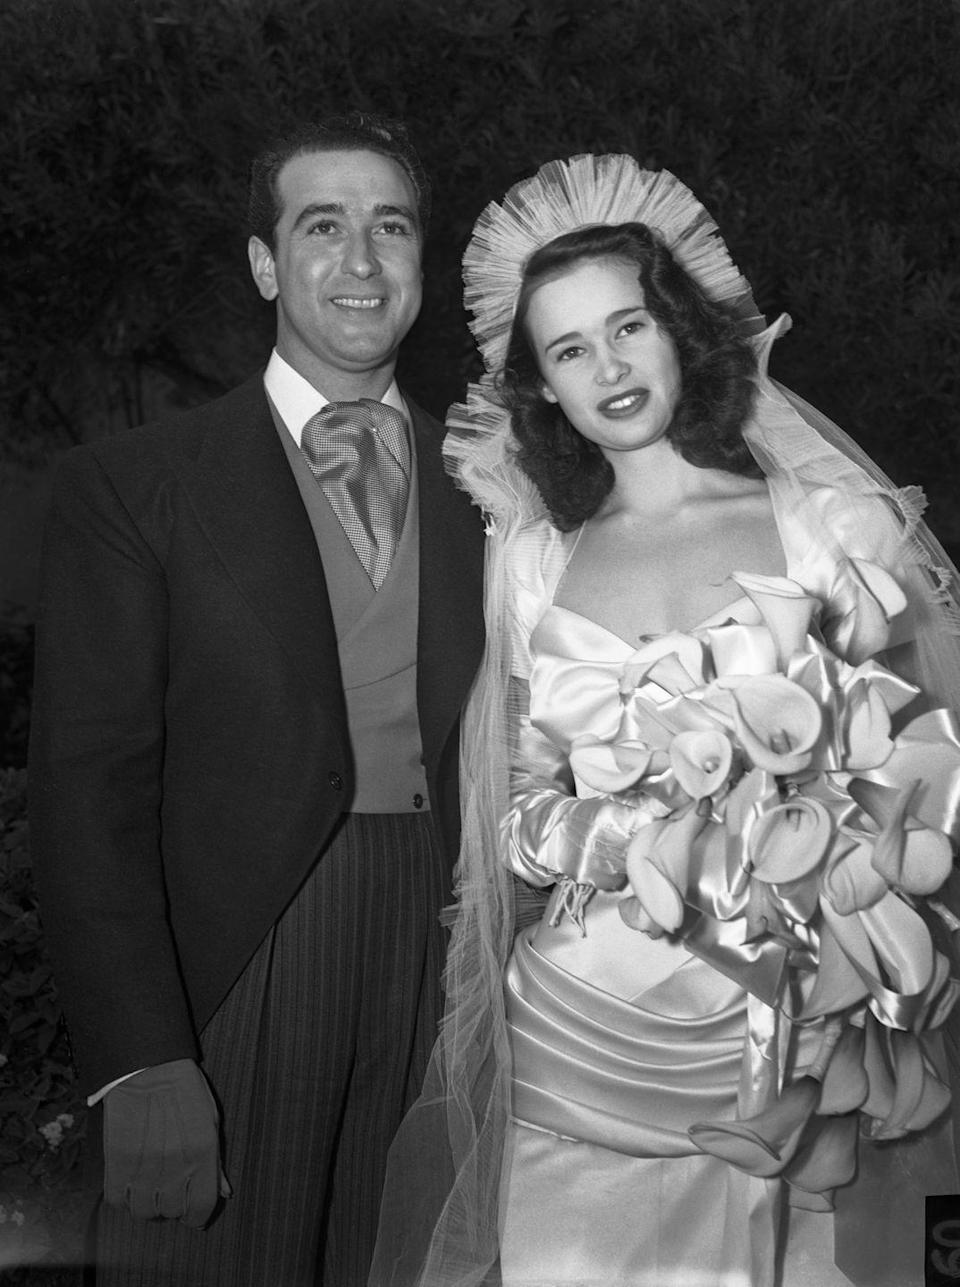 <p>Vanderbilt and Pat DeCicco on their wedding day. They were married until 1945.</p>